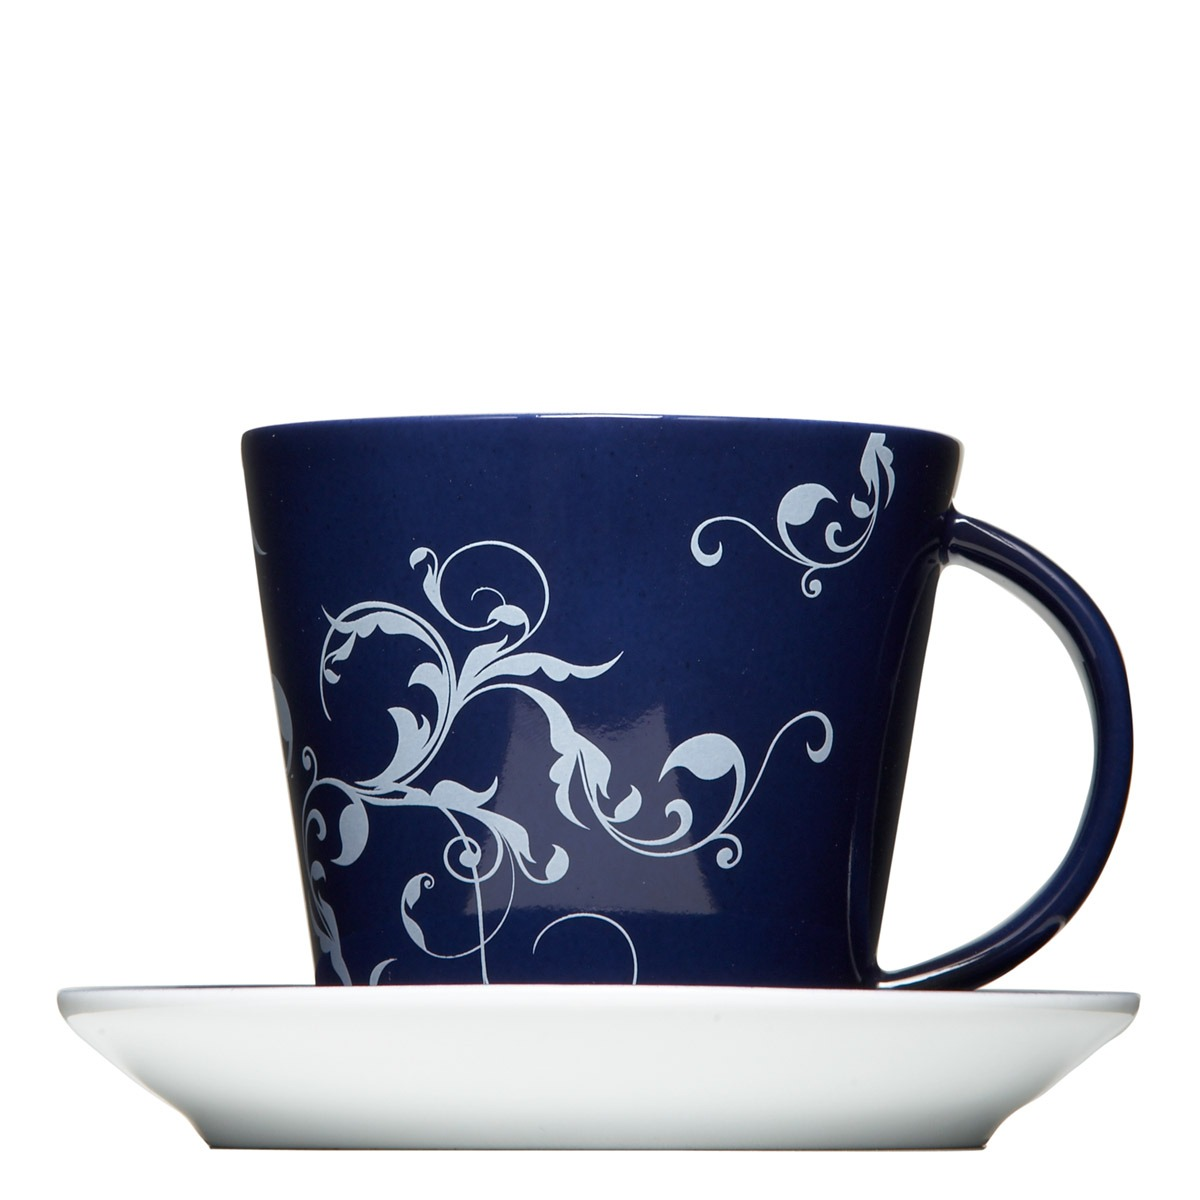 Have coffee cup printed with ceramic glaze